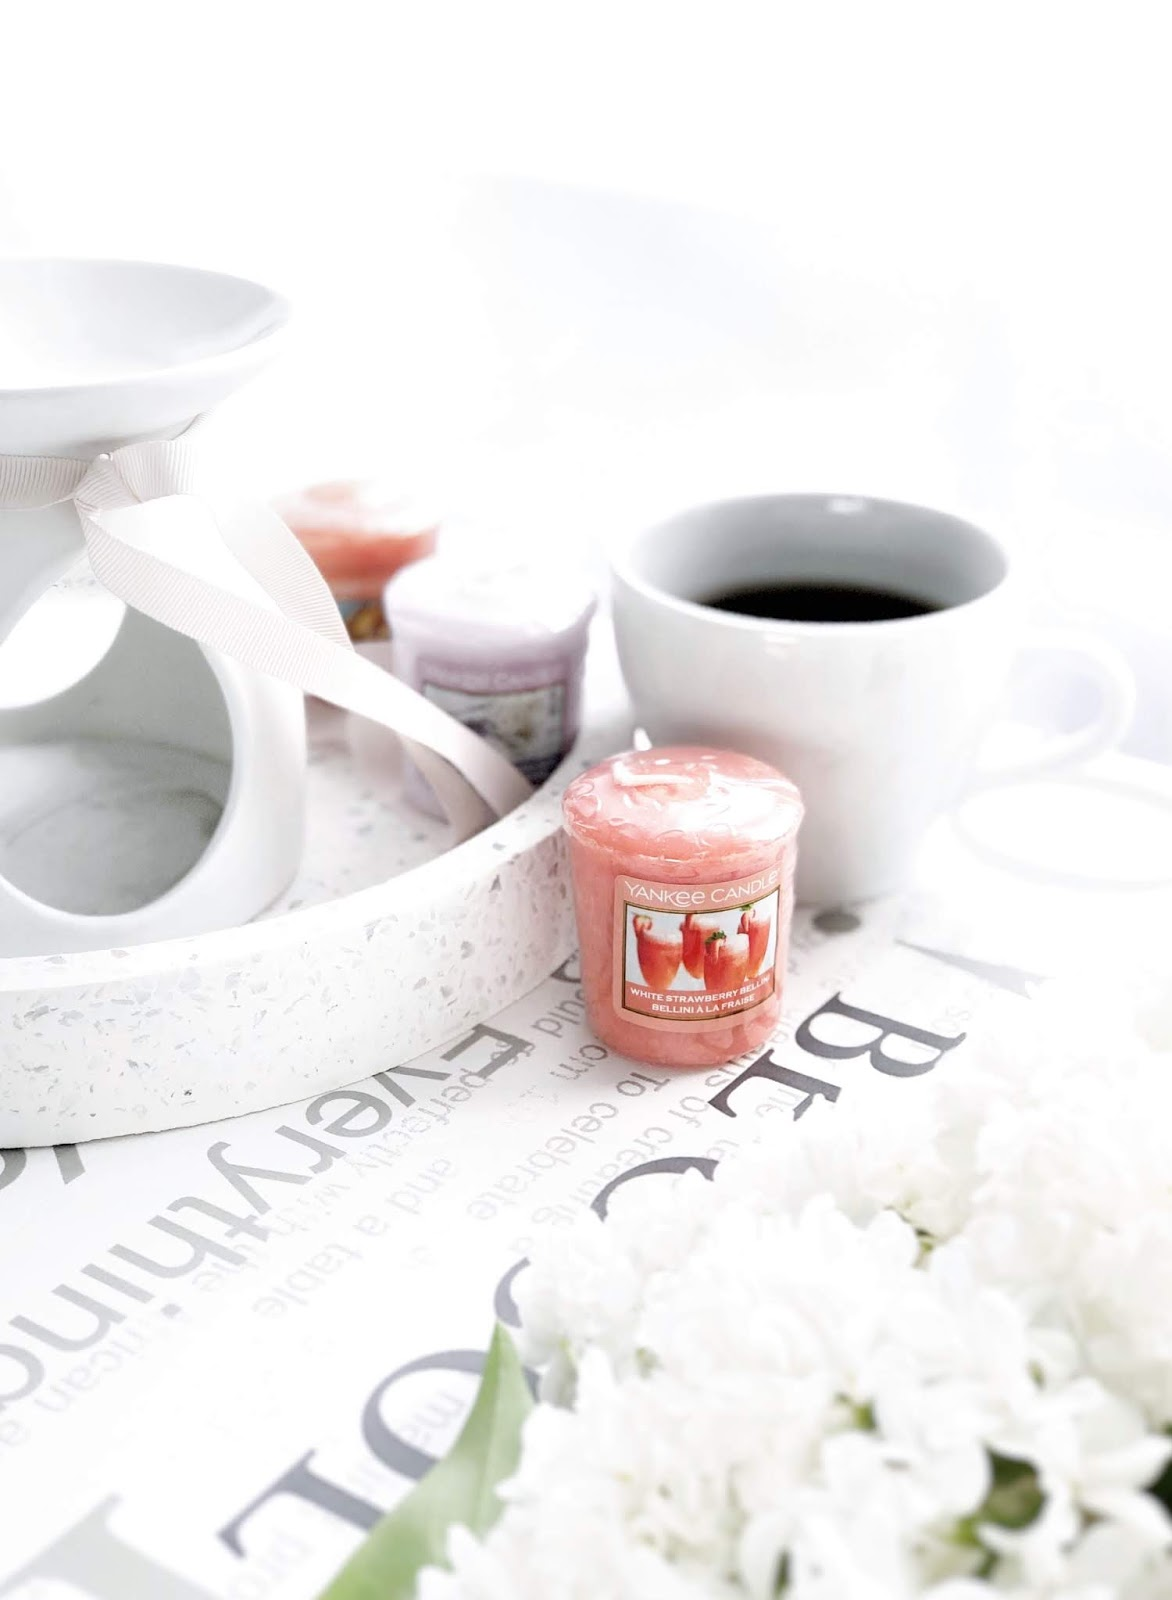 Sunday Brunch Yankee Candle vol. 2